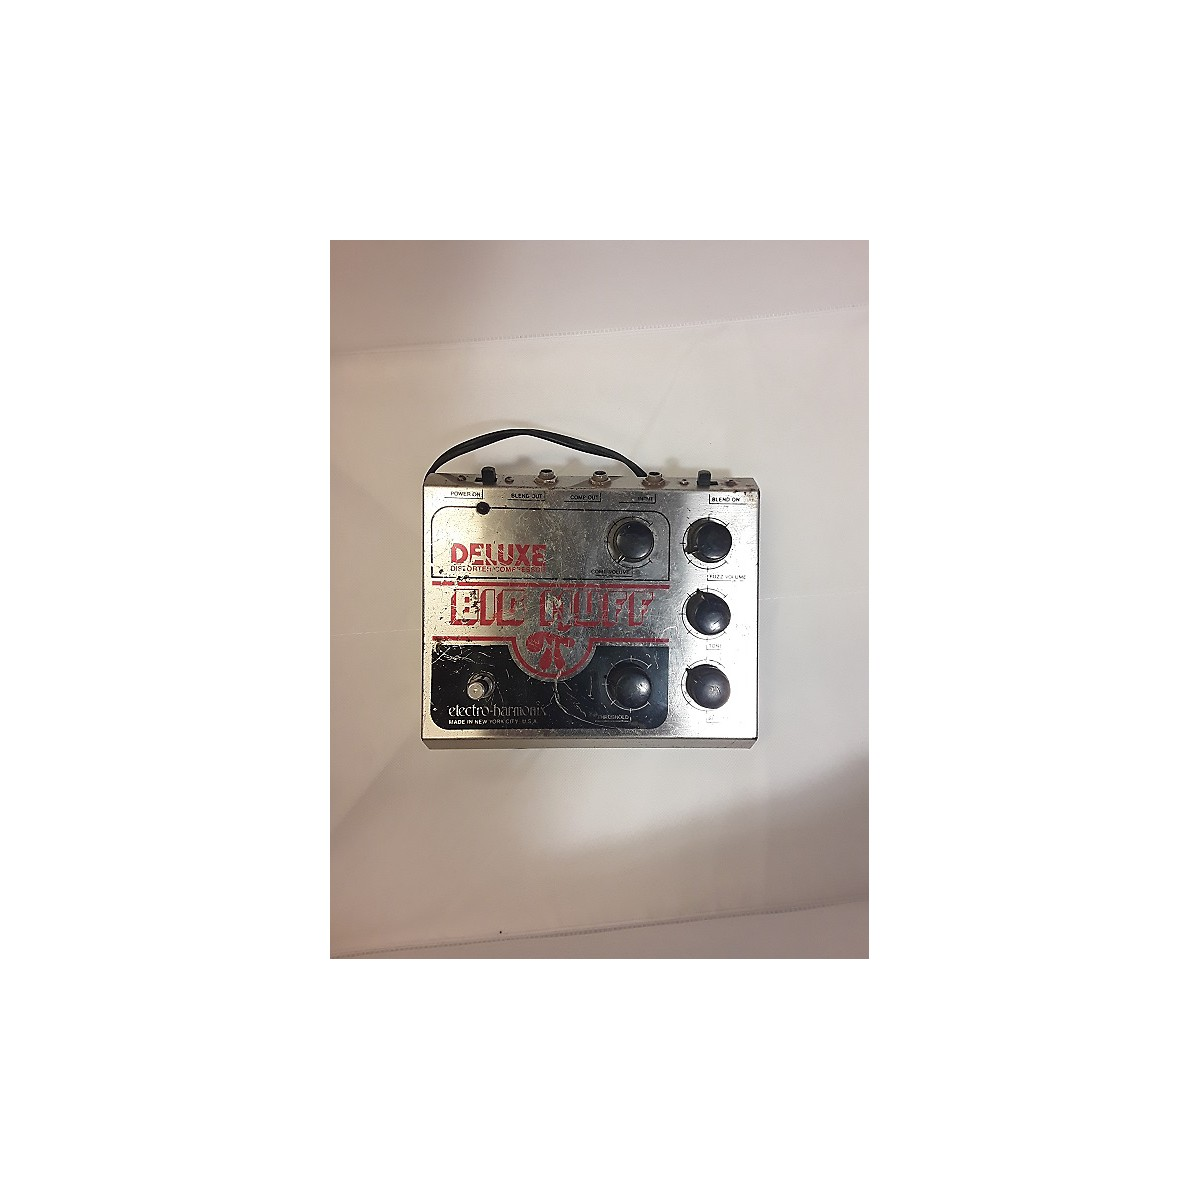 Electro-Harmonix 1980s Deluxe Big Muff Distortion Effect Pedal